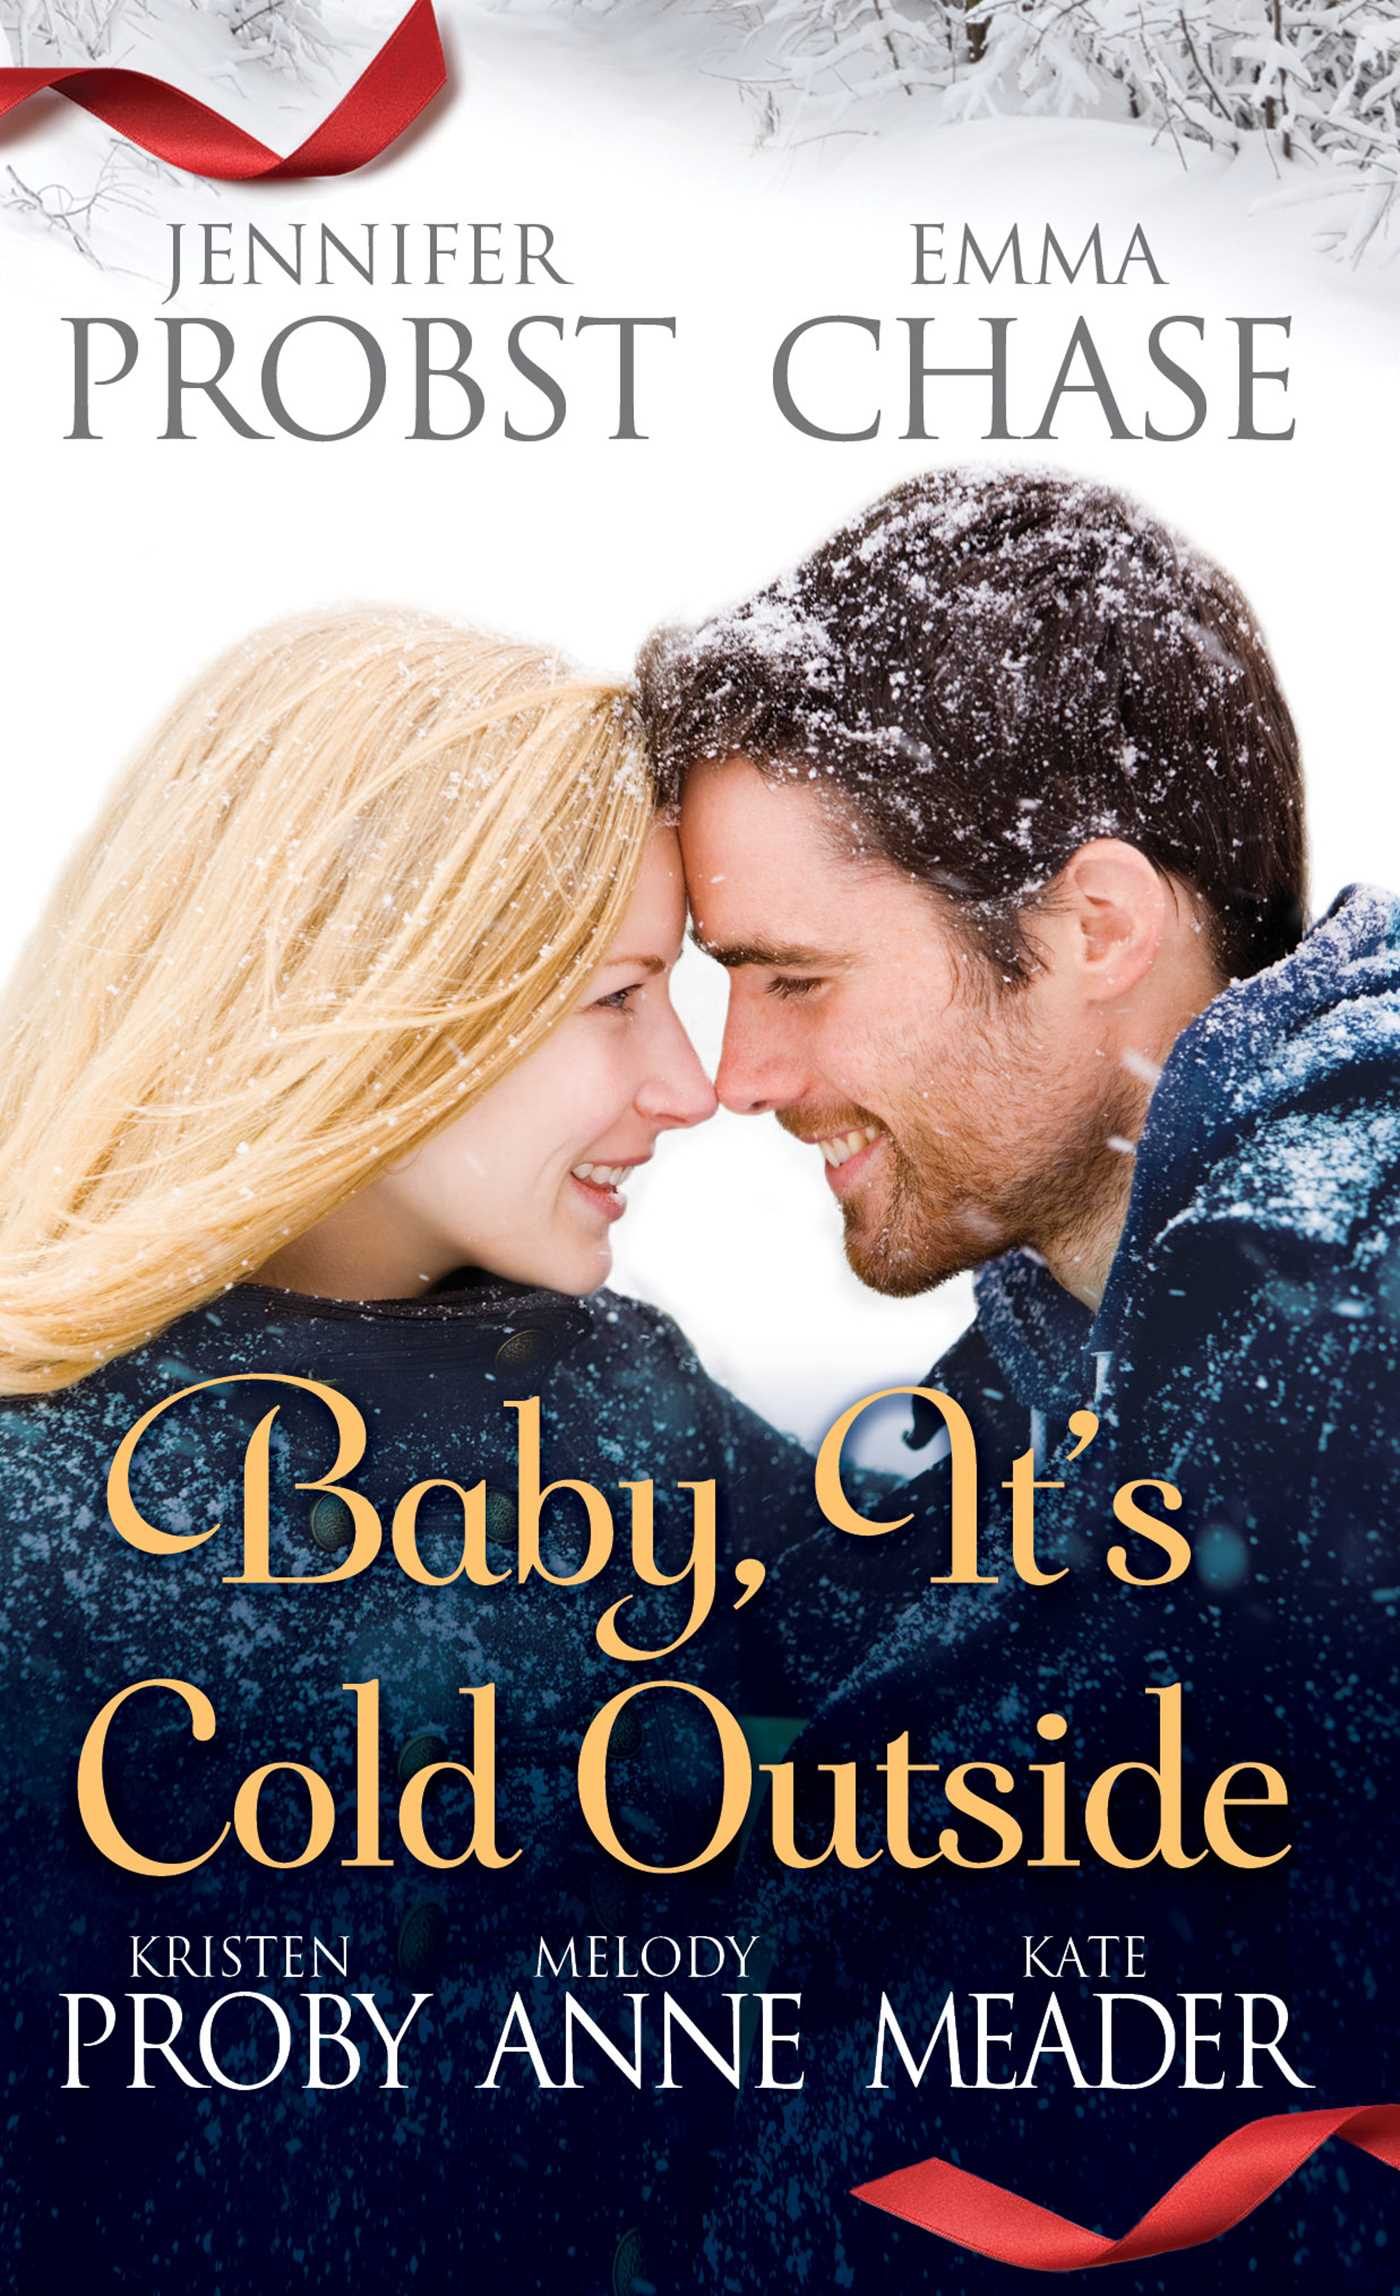 Baby-its-cold-outside-9781476783833_hr